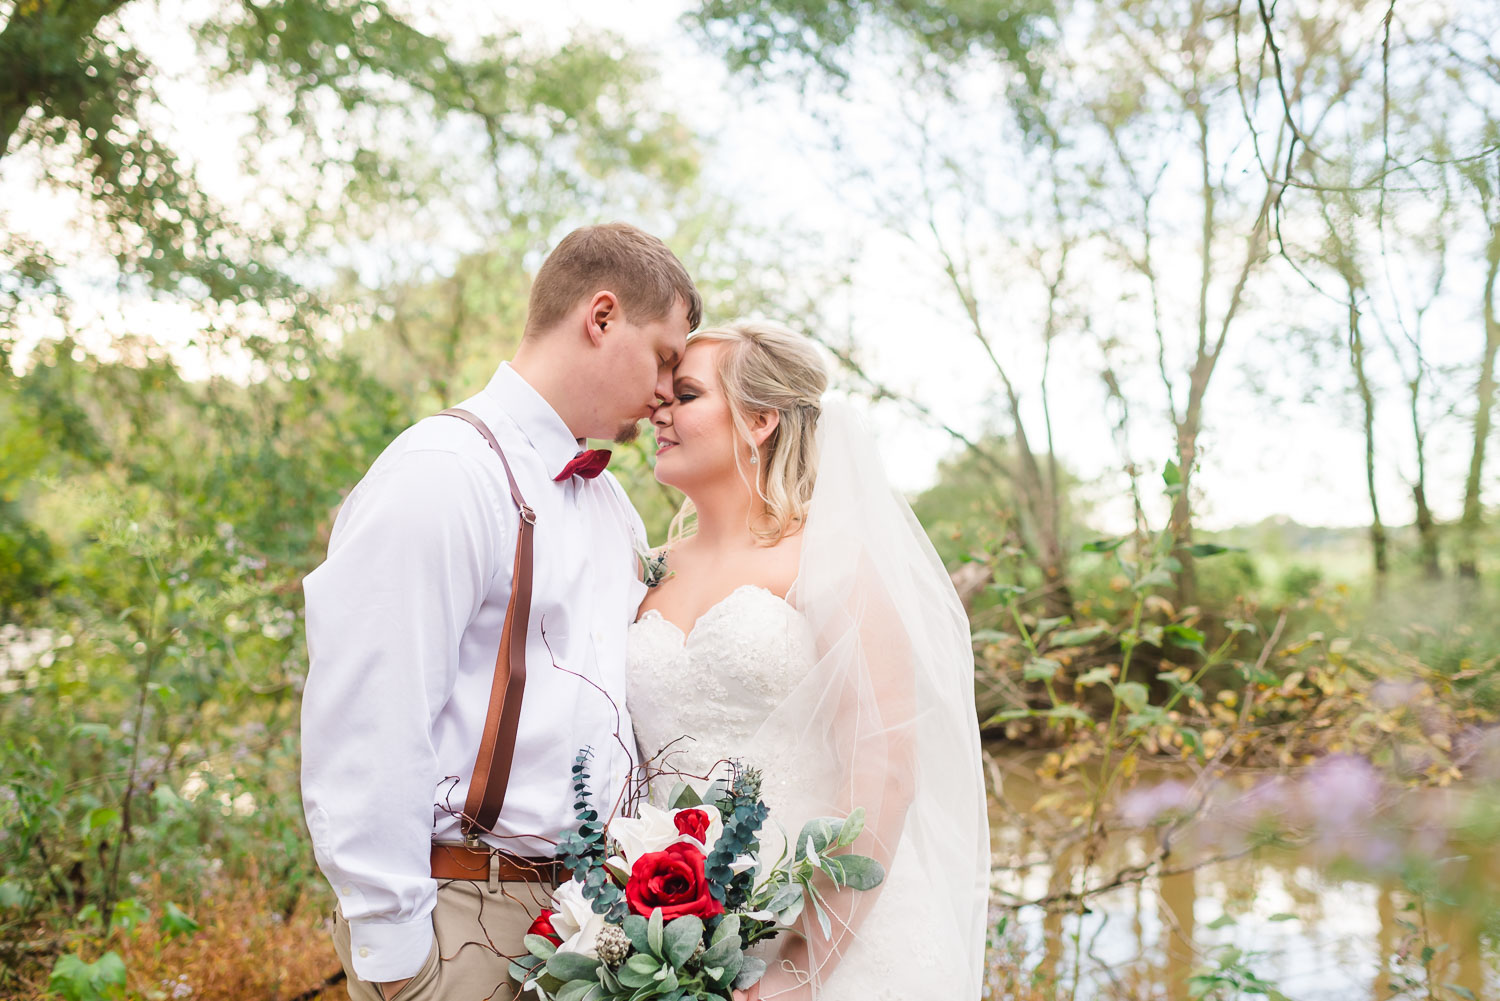 groom in white button down shirt and bowtie, and bride with red, bold red fall colored bouquet outside in lavendar Asters